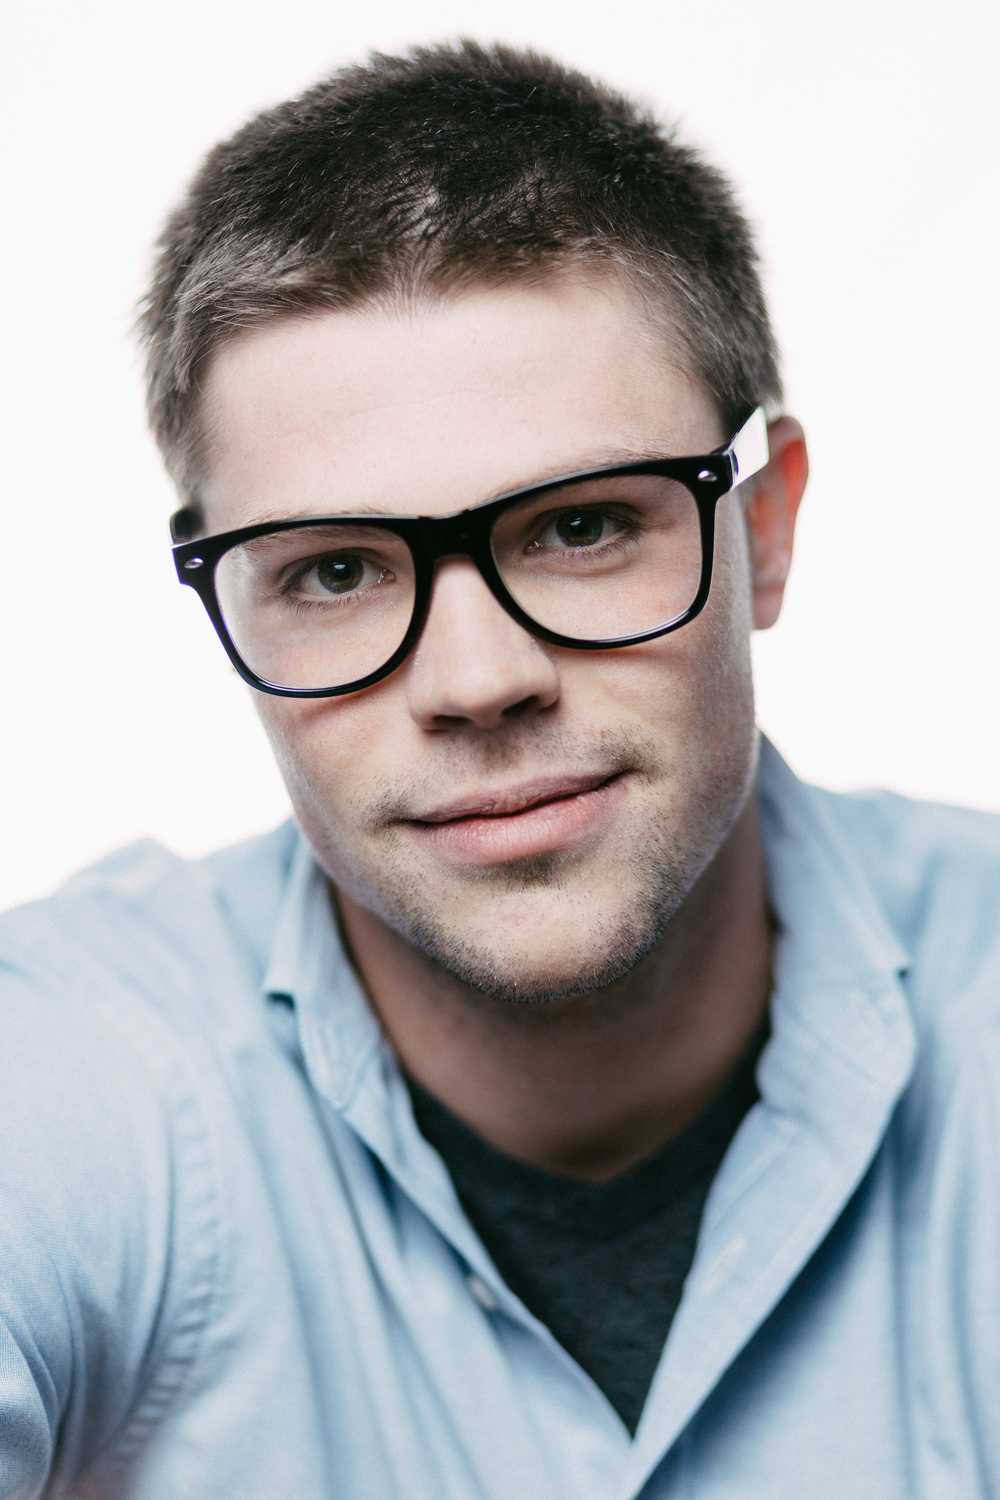 Rob A Glasses Headshot.jpg